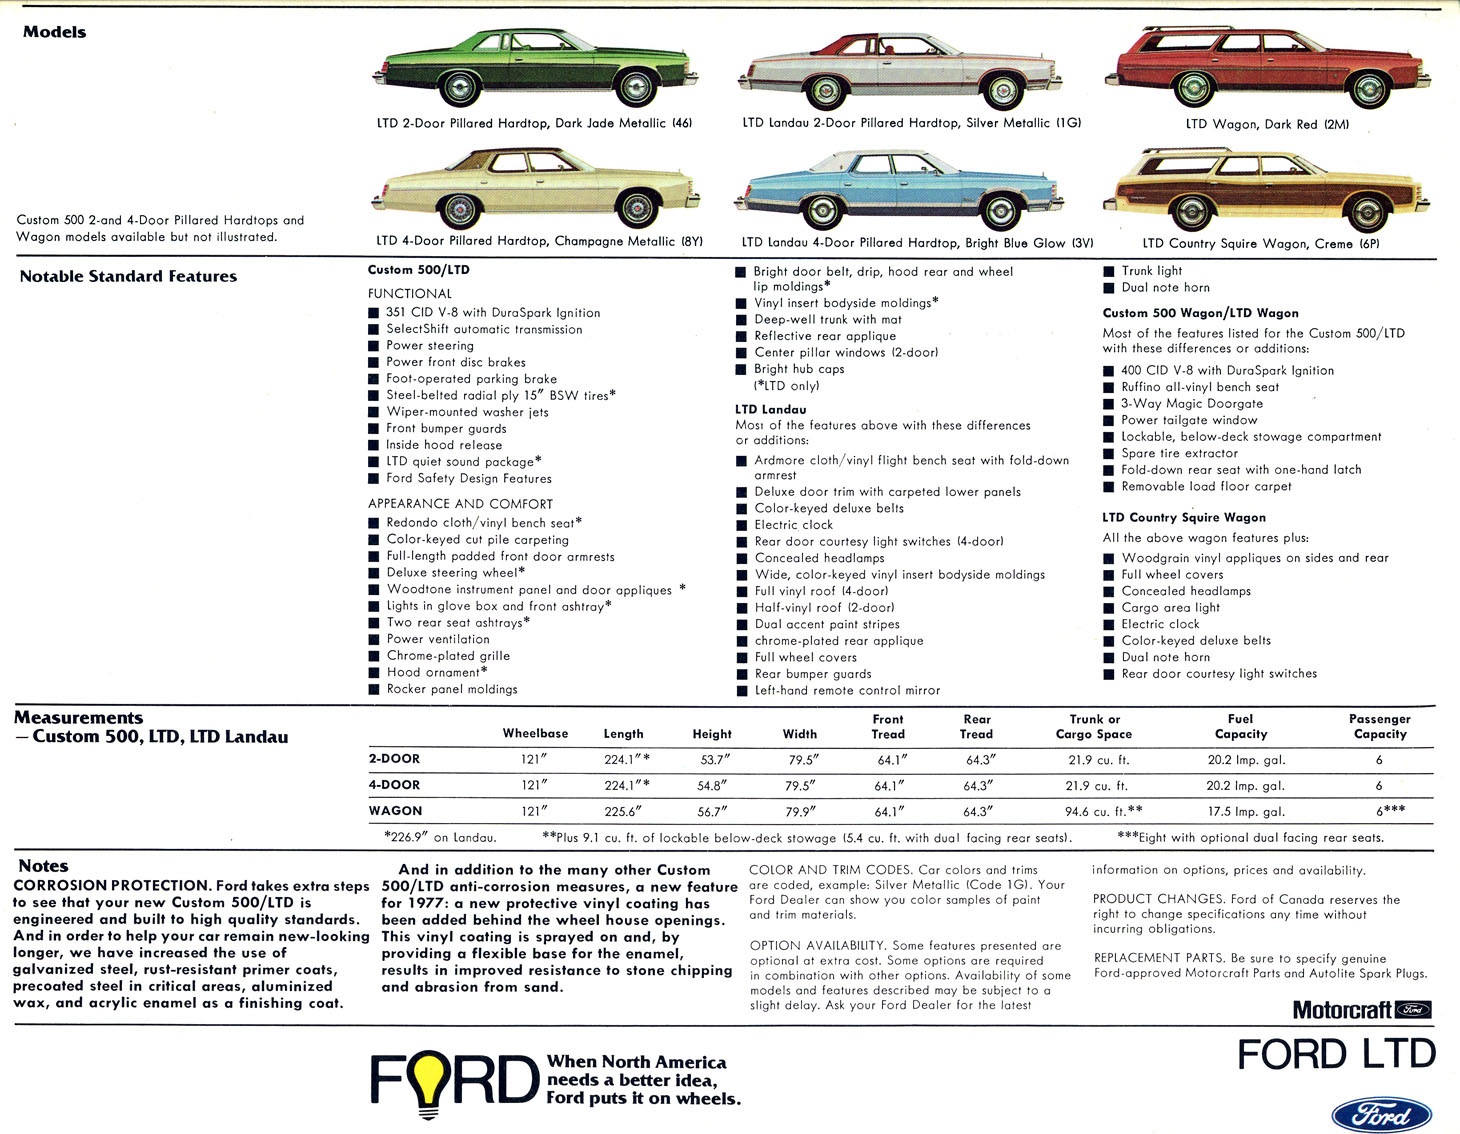 IMCDb.org: 1975 Ford LTD in